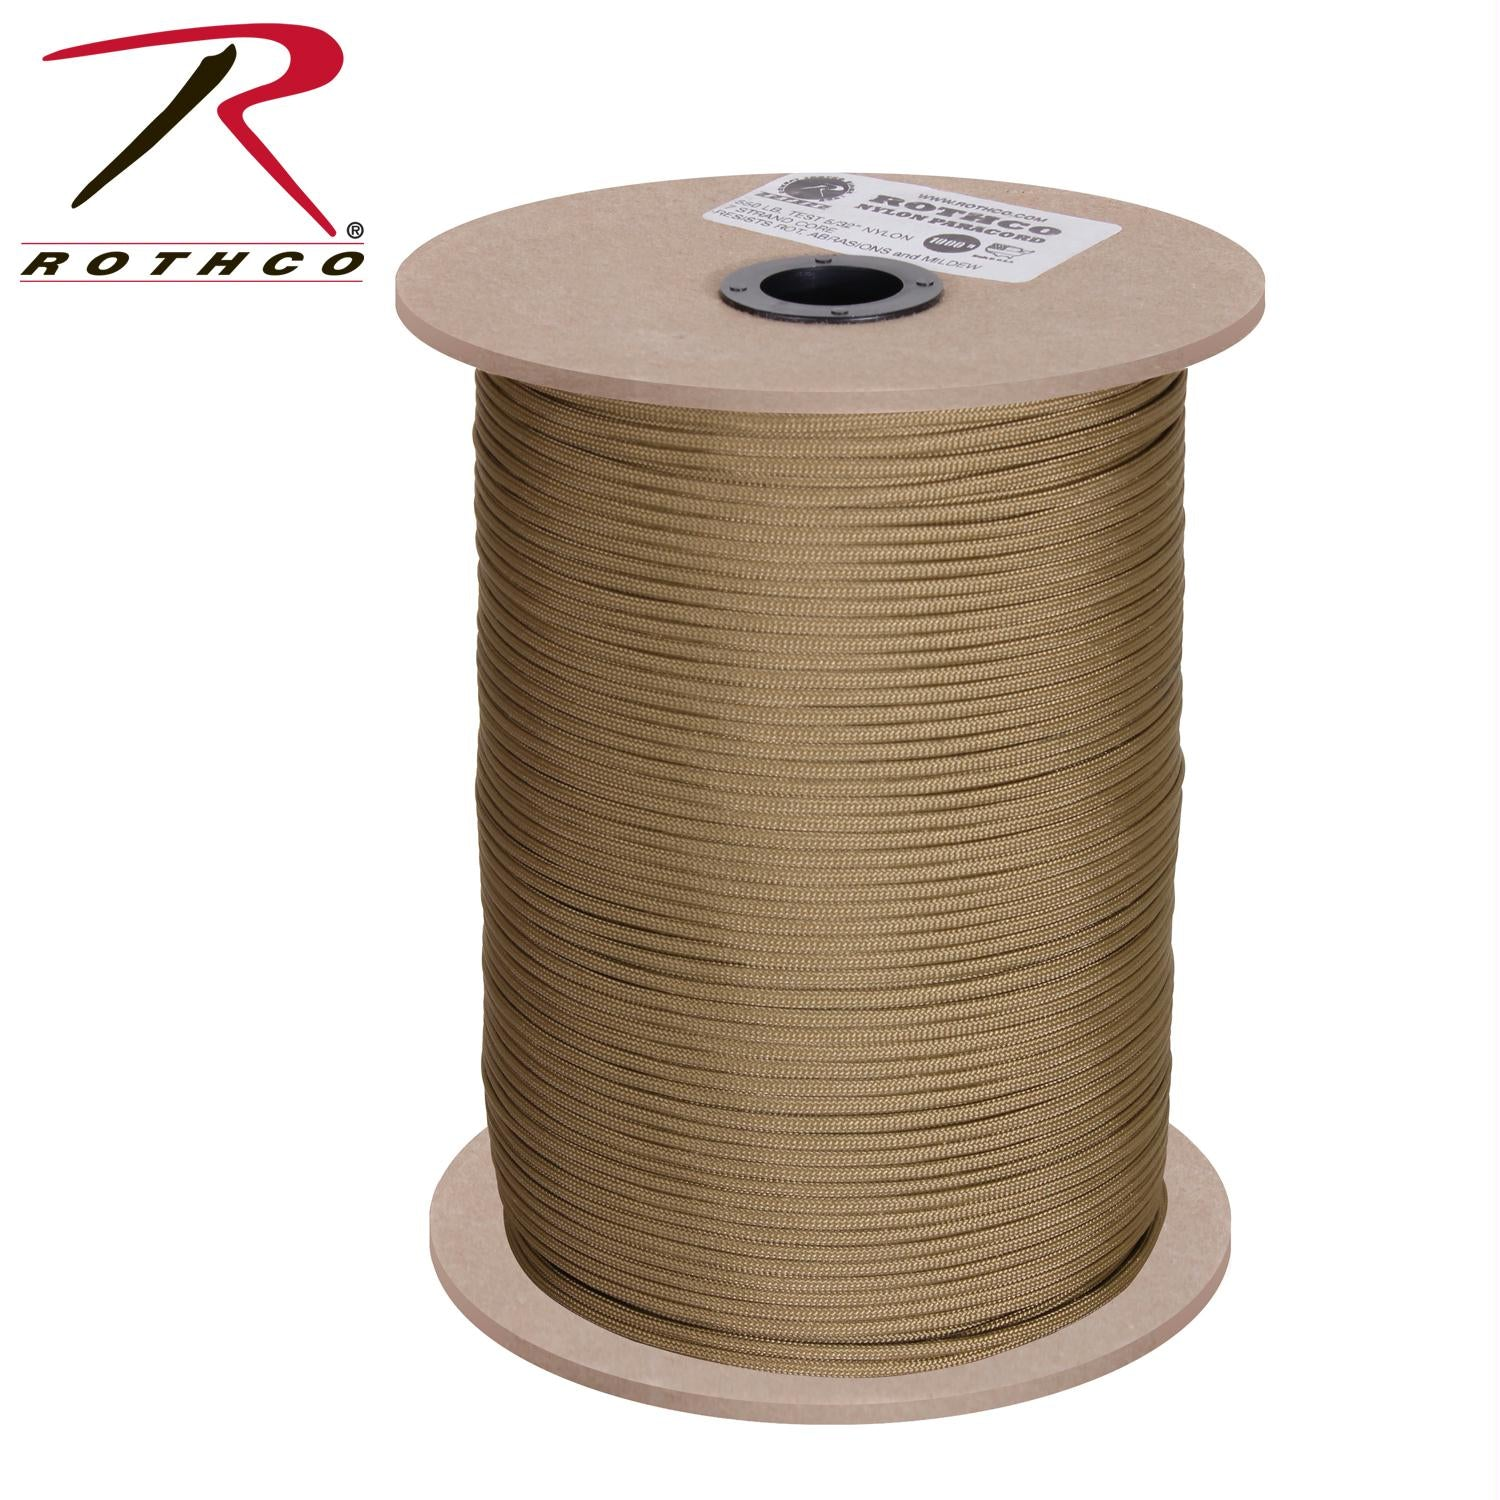 Rothco Nylon Paracord 550lb 1000 Ft Spool - Coyote Brown